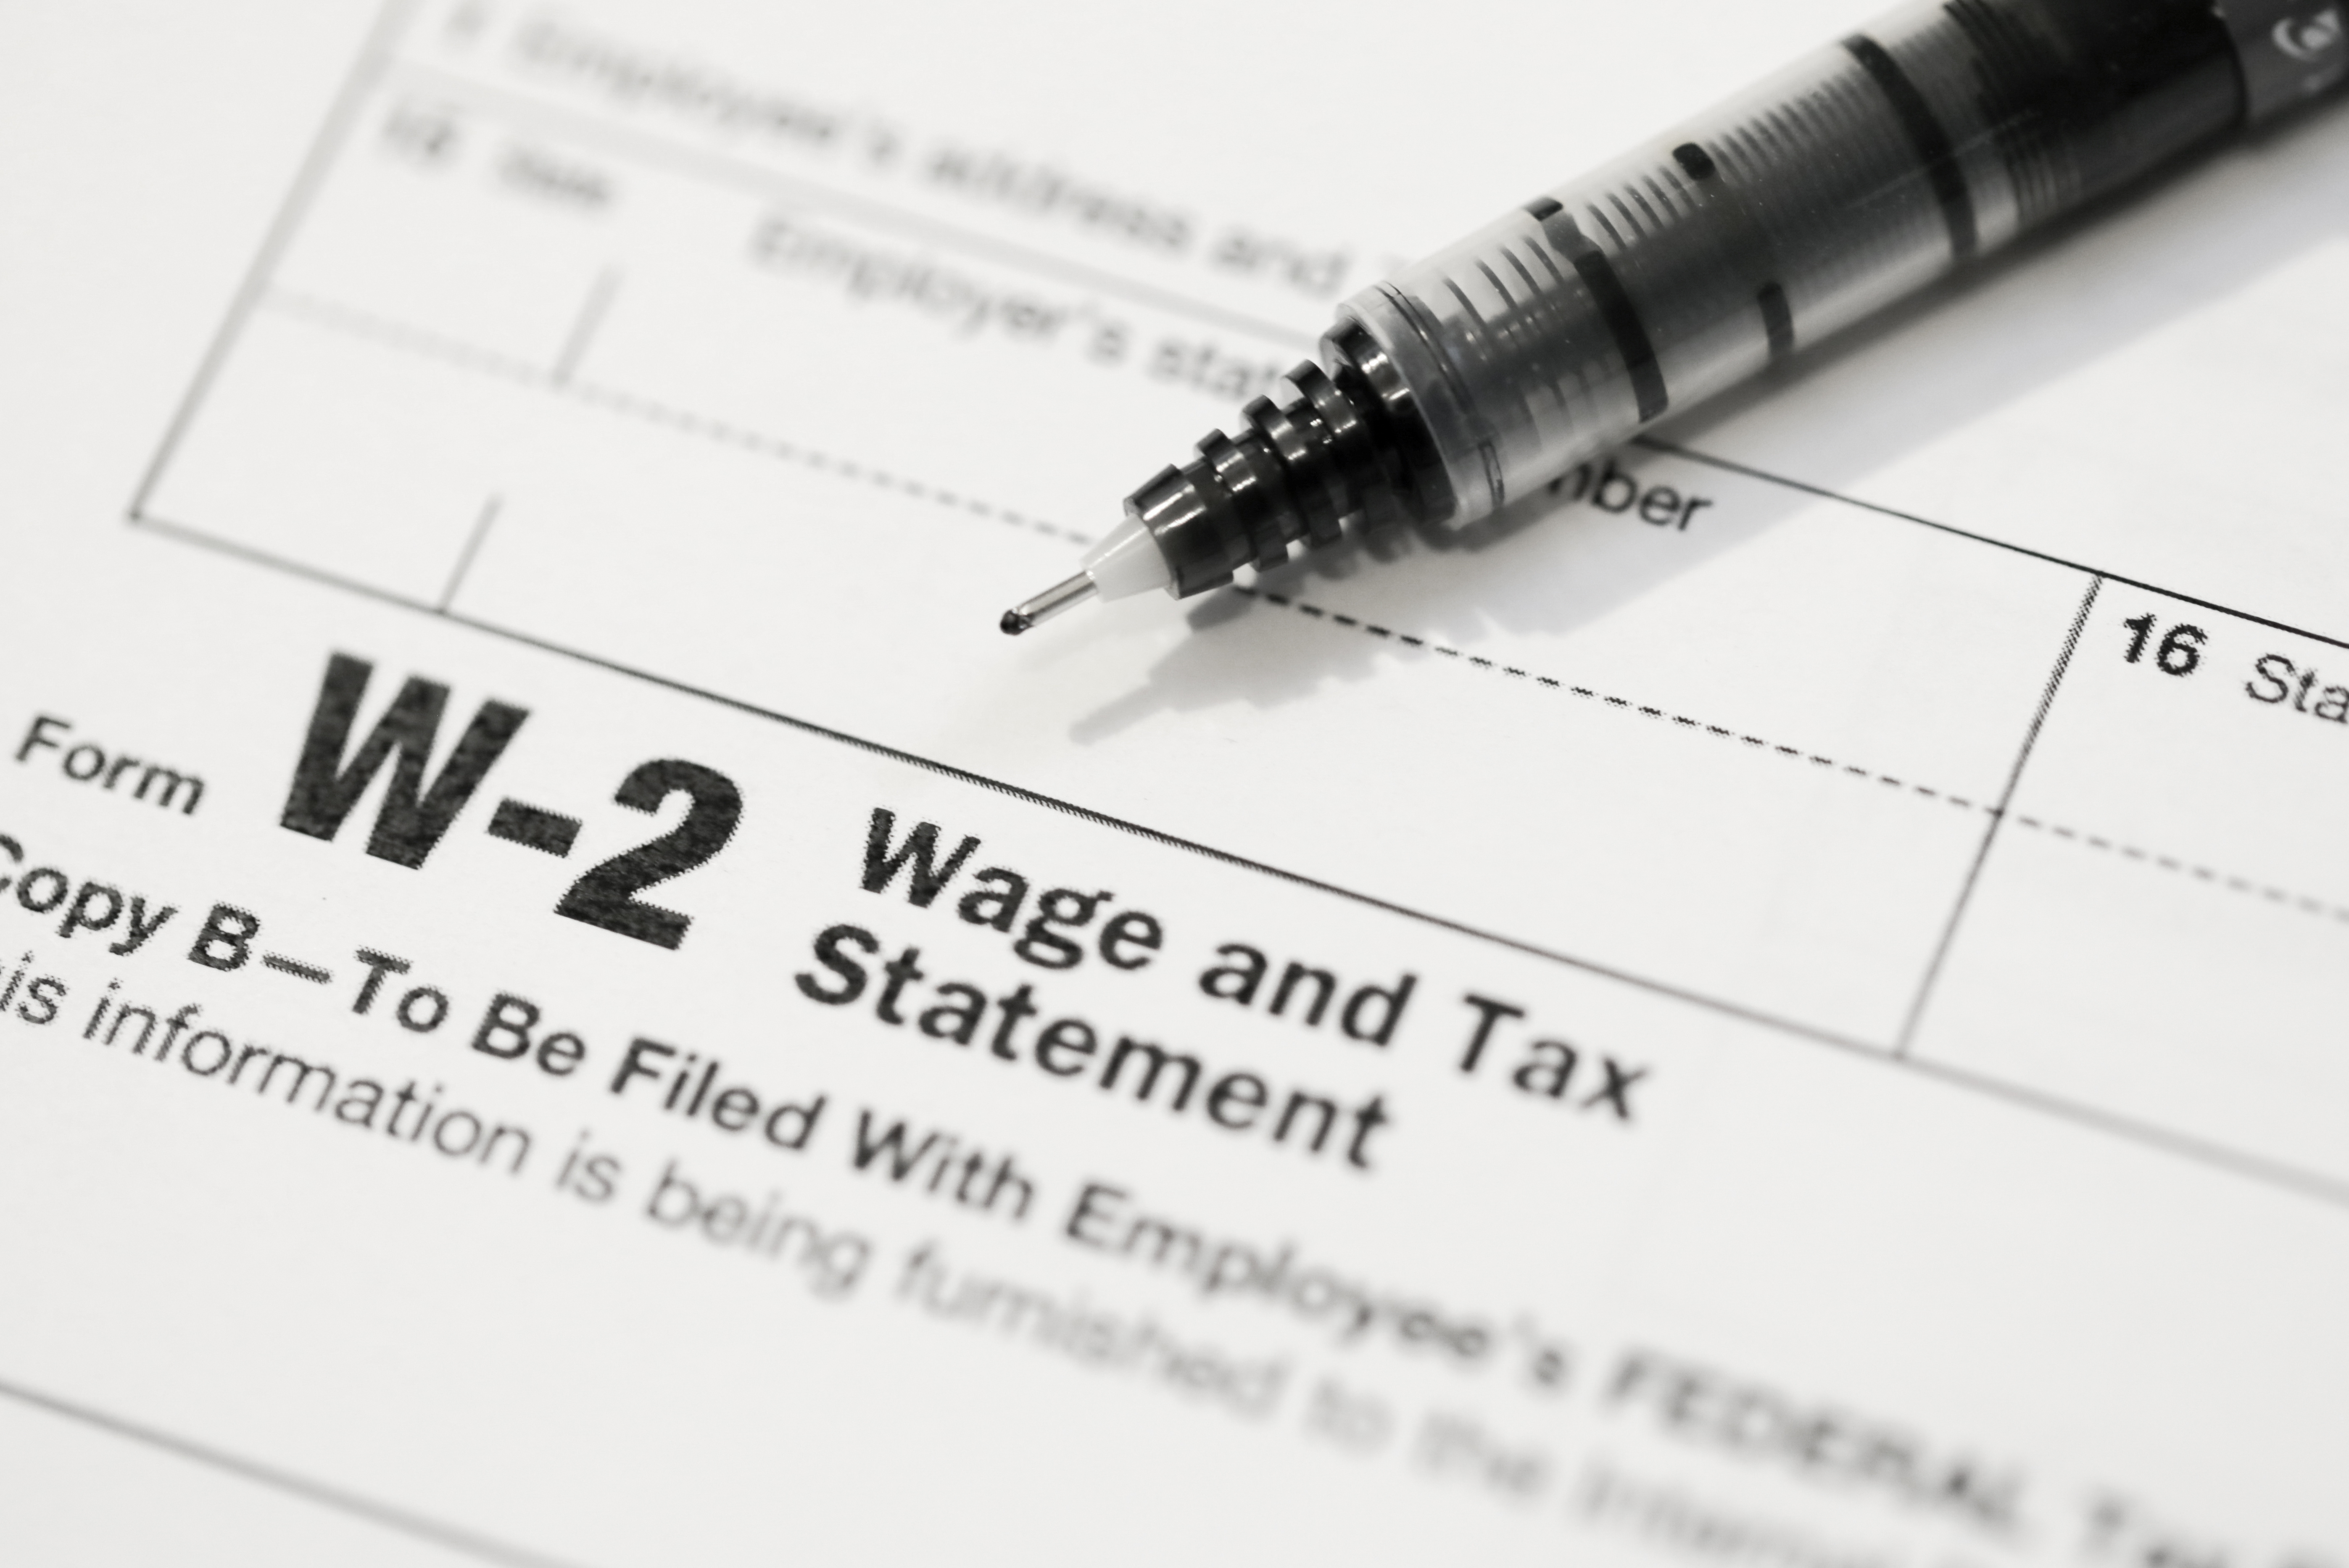 Urgent W-2 and 1099 Filings Notice